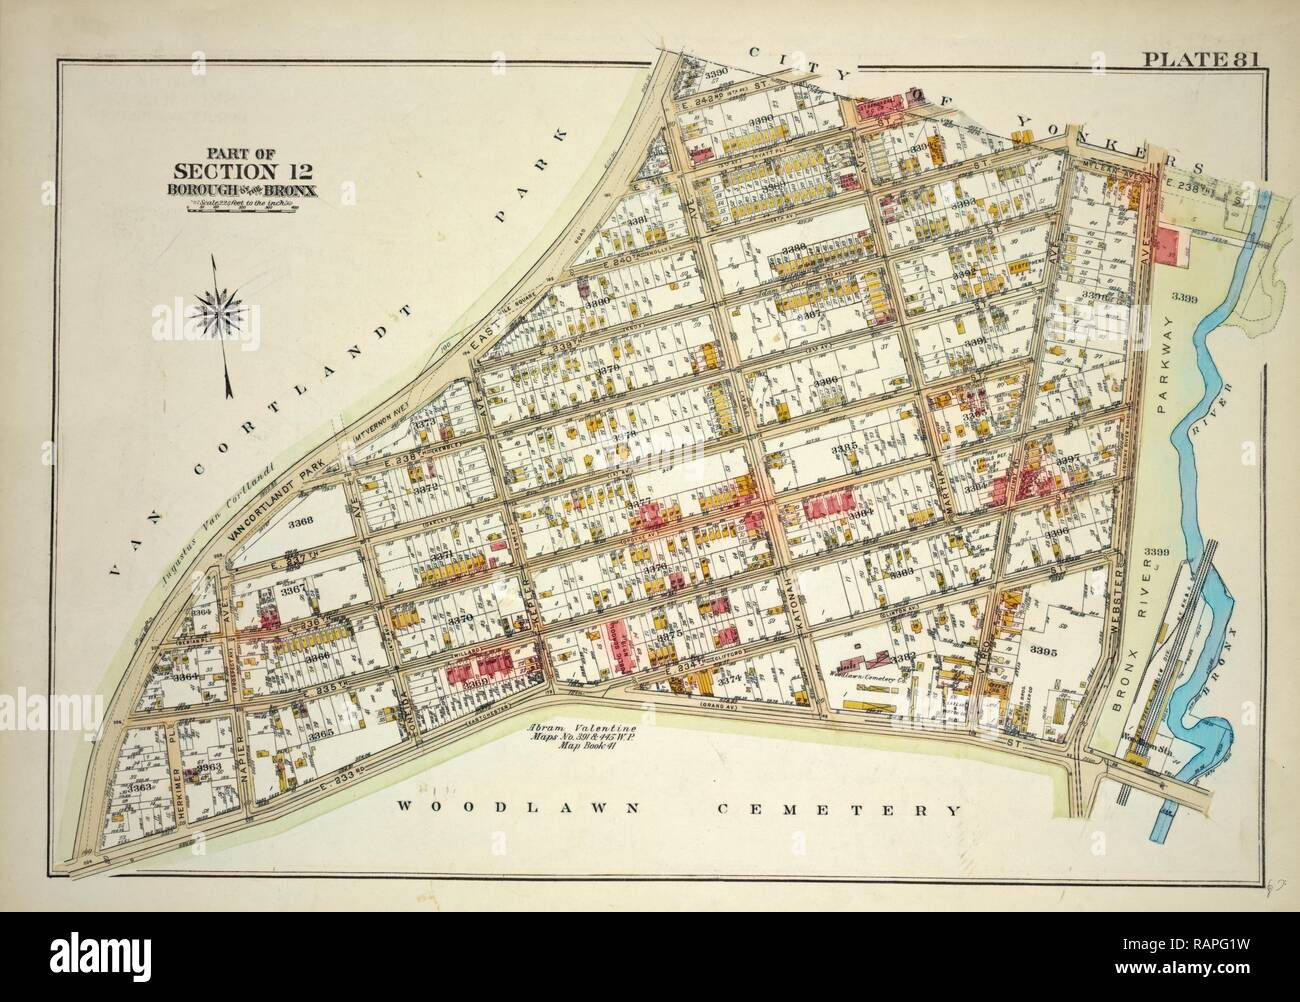 Plate 81, Part of Section 13, Borough of the Bronx. Bounded by Van Cortlandt Park East, E. 242nd Street, Martha reimagined - Stock Image